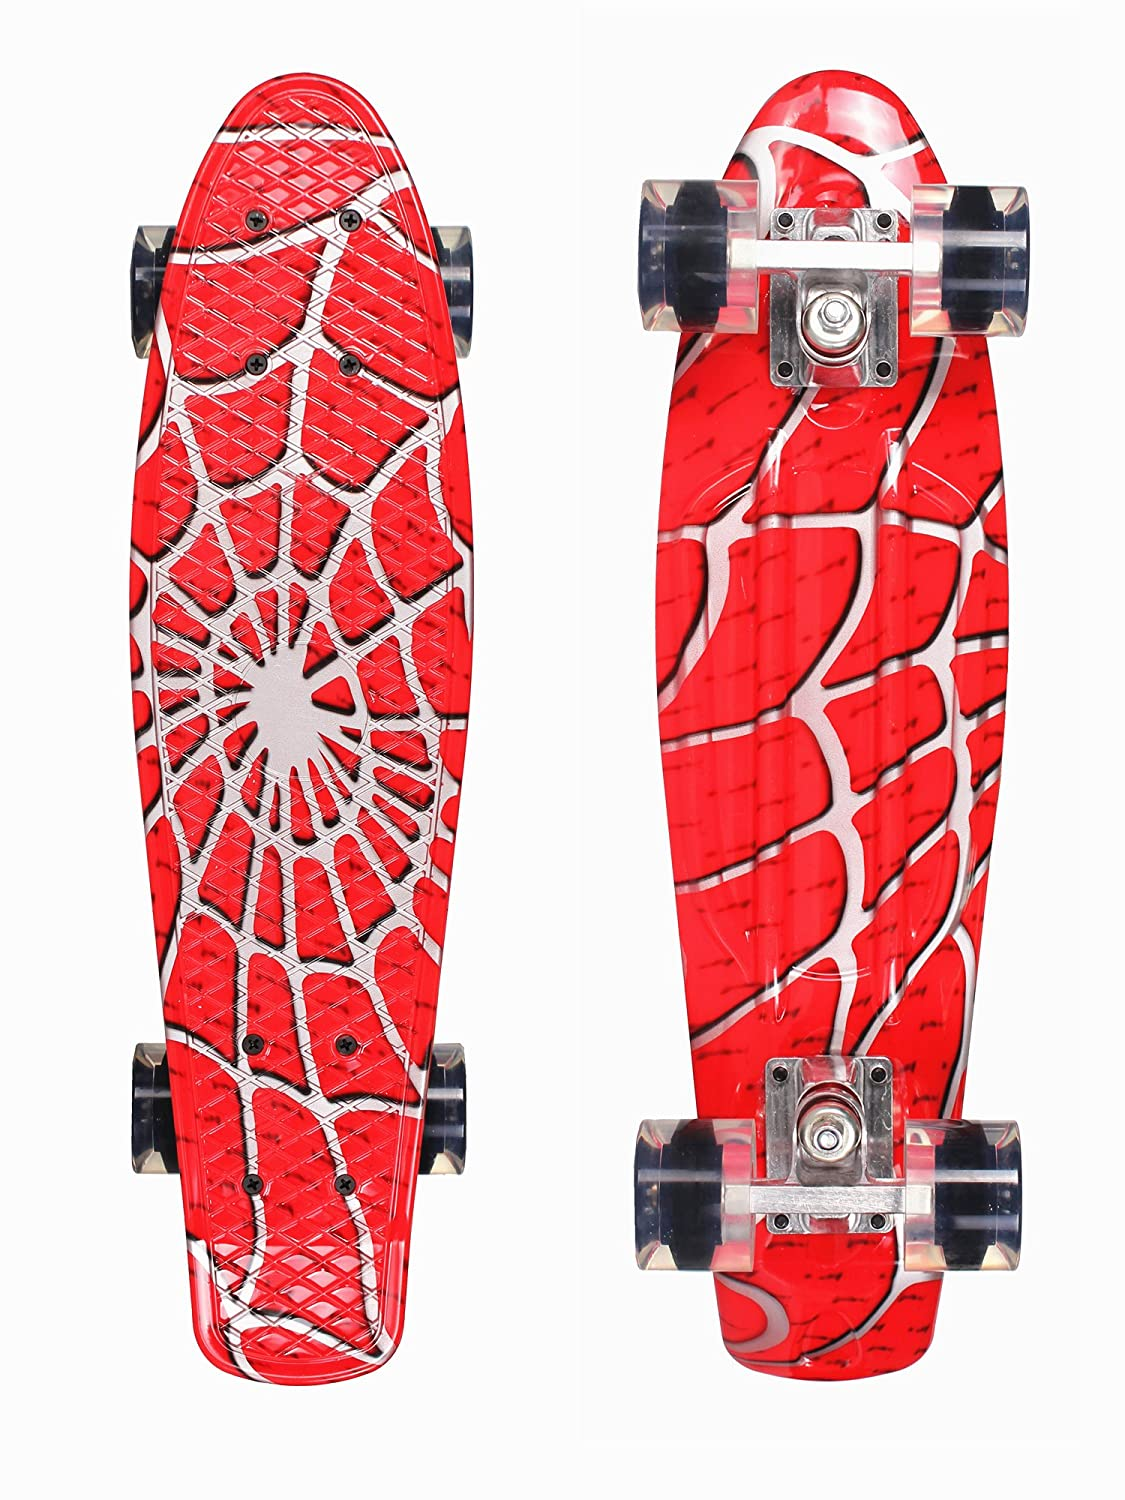 Xtreme Free Skateboards Penny Skateboard 22 inches for Beginners and Kids Mini Board Cruisher